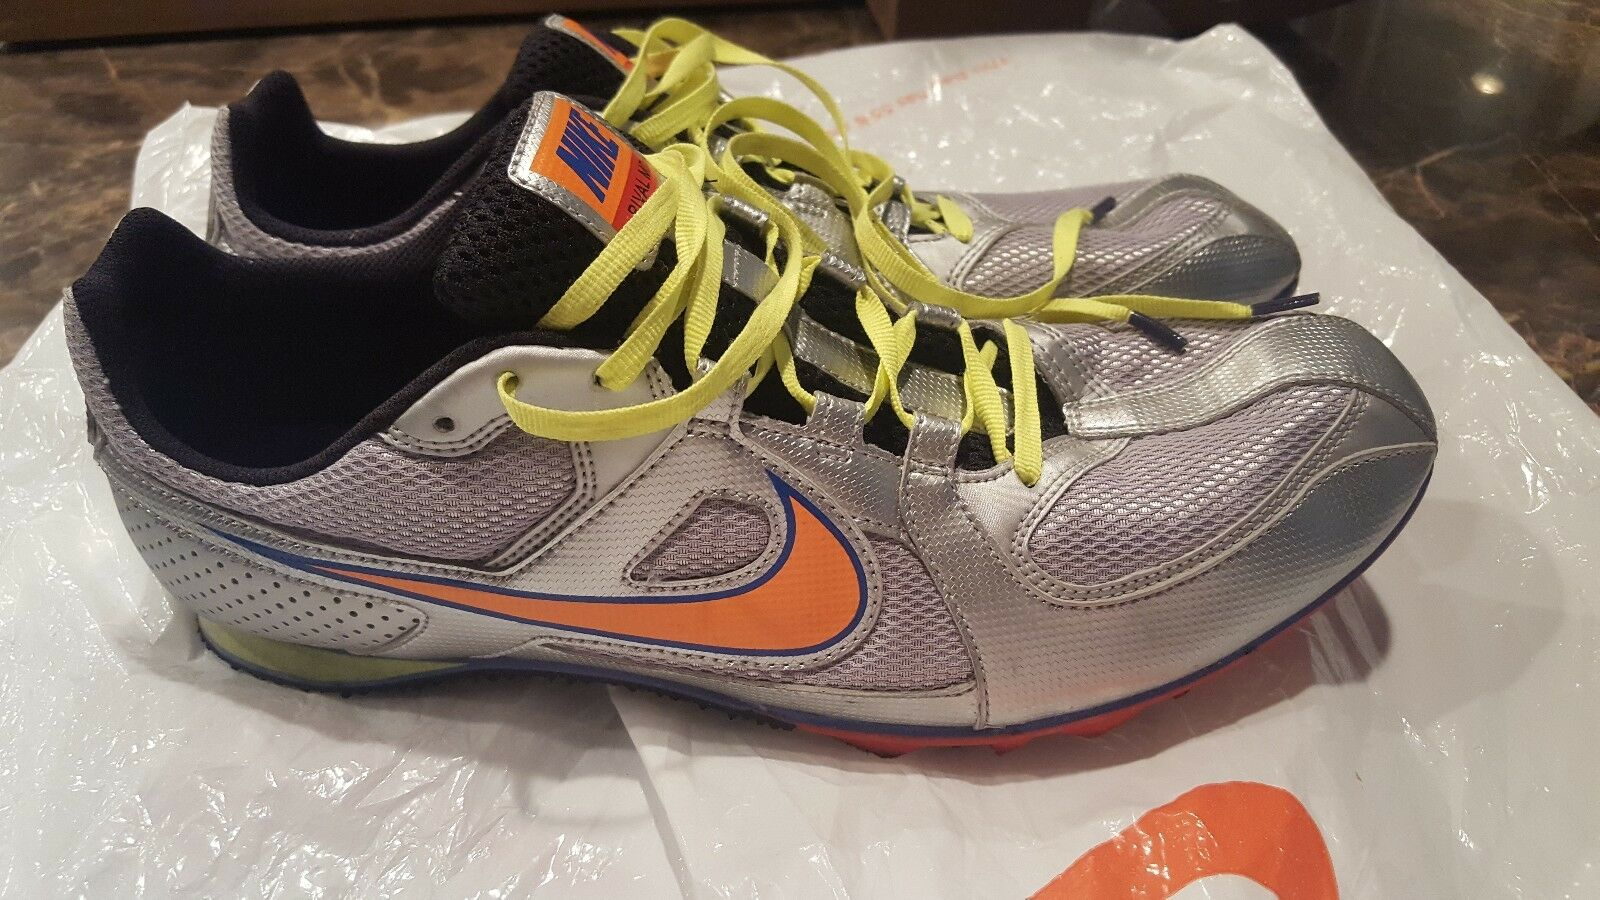 Nike Zoom Rival MD6 Track and Field Shoes Men's Comfortable  Seasonal clearance sale